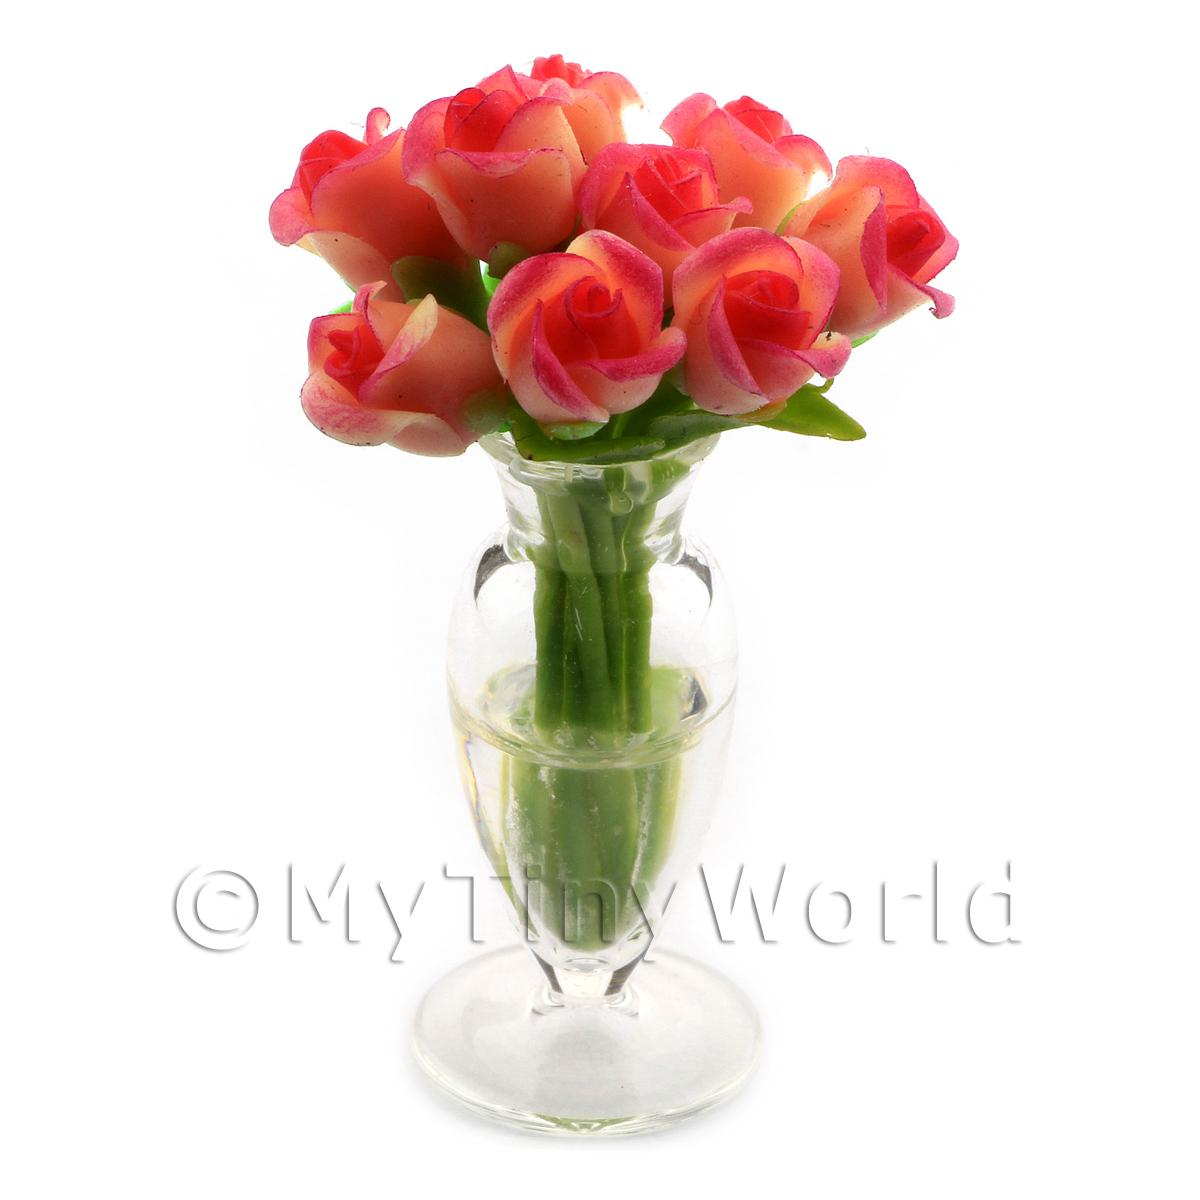 9 Miniature Pink   Red Roses in a Glass Vase